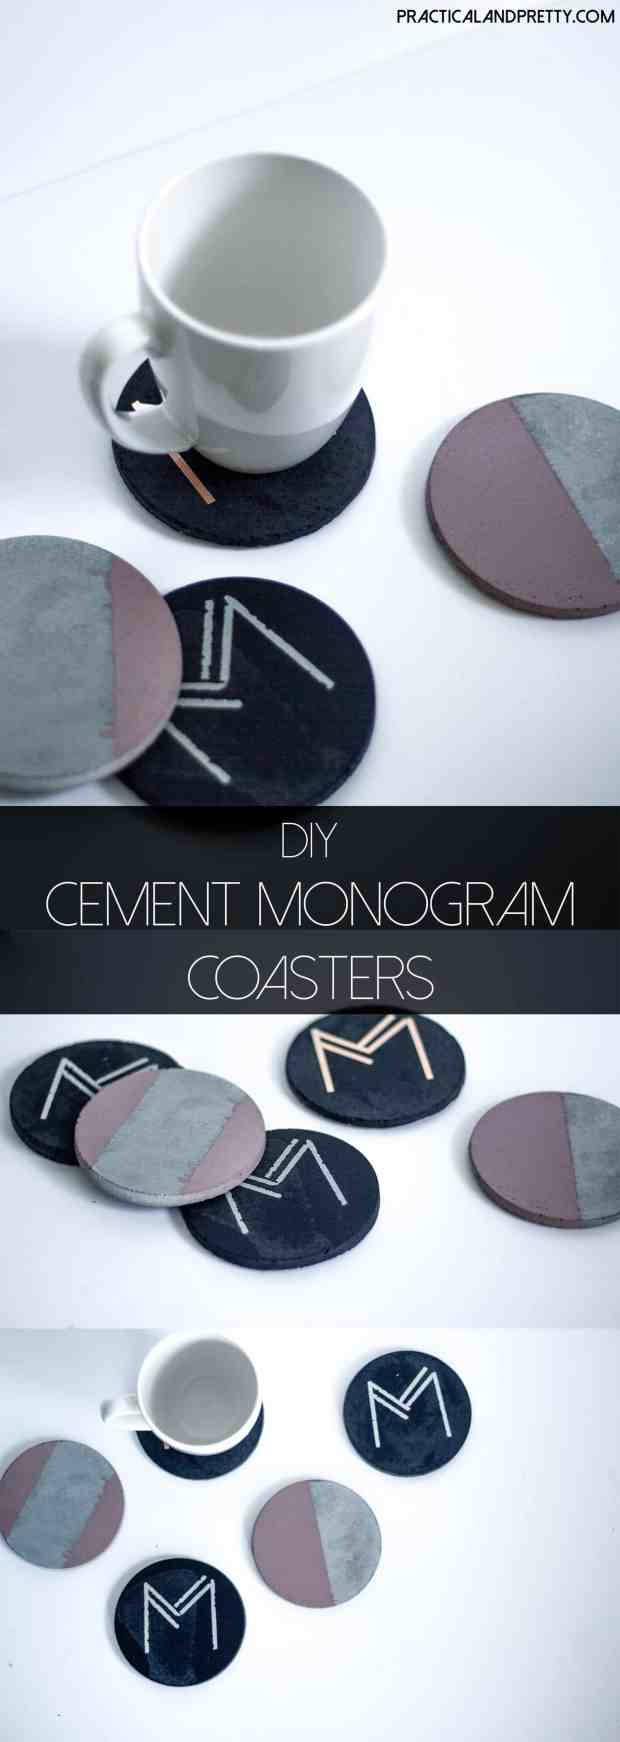 DIY cement coasters and instructions. Monogrammed with Art Deco font! Every house needs a set of these.